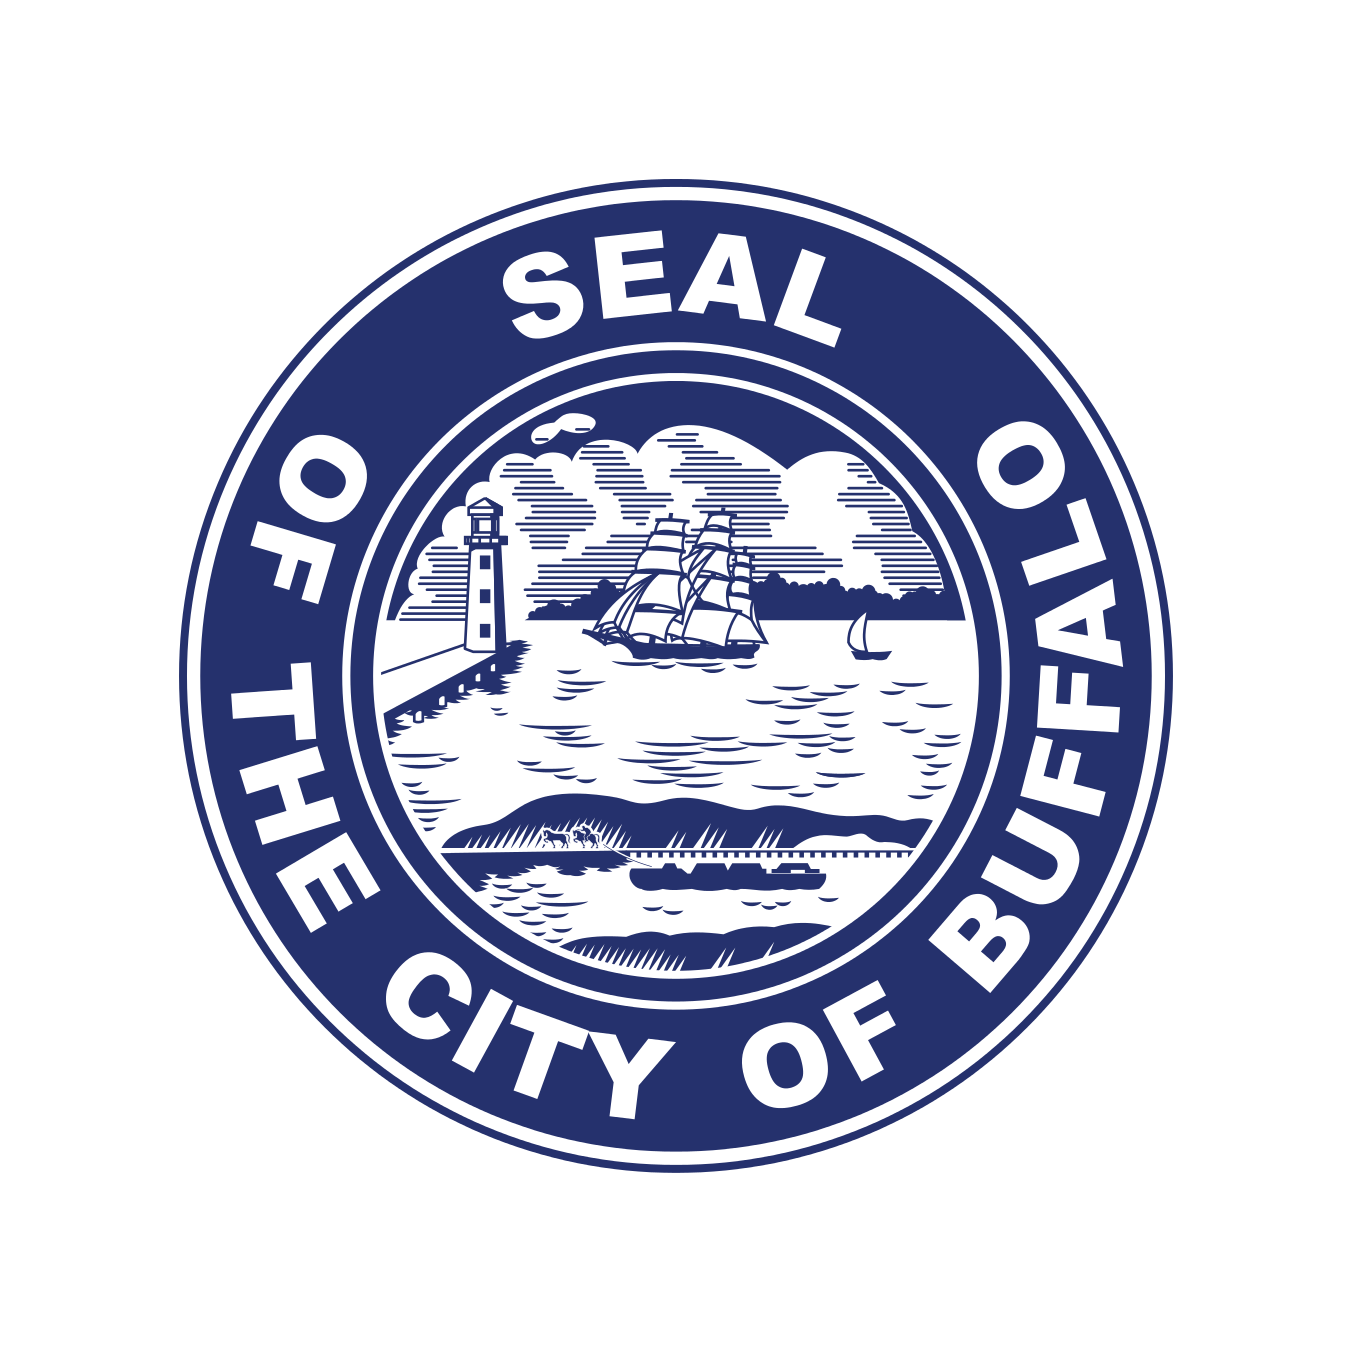 Seal of Buffalo City_NY